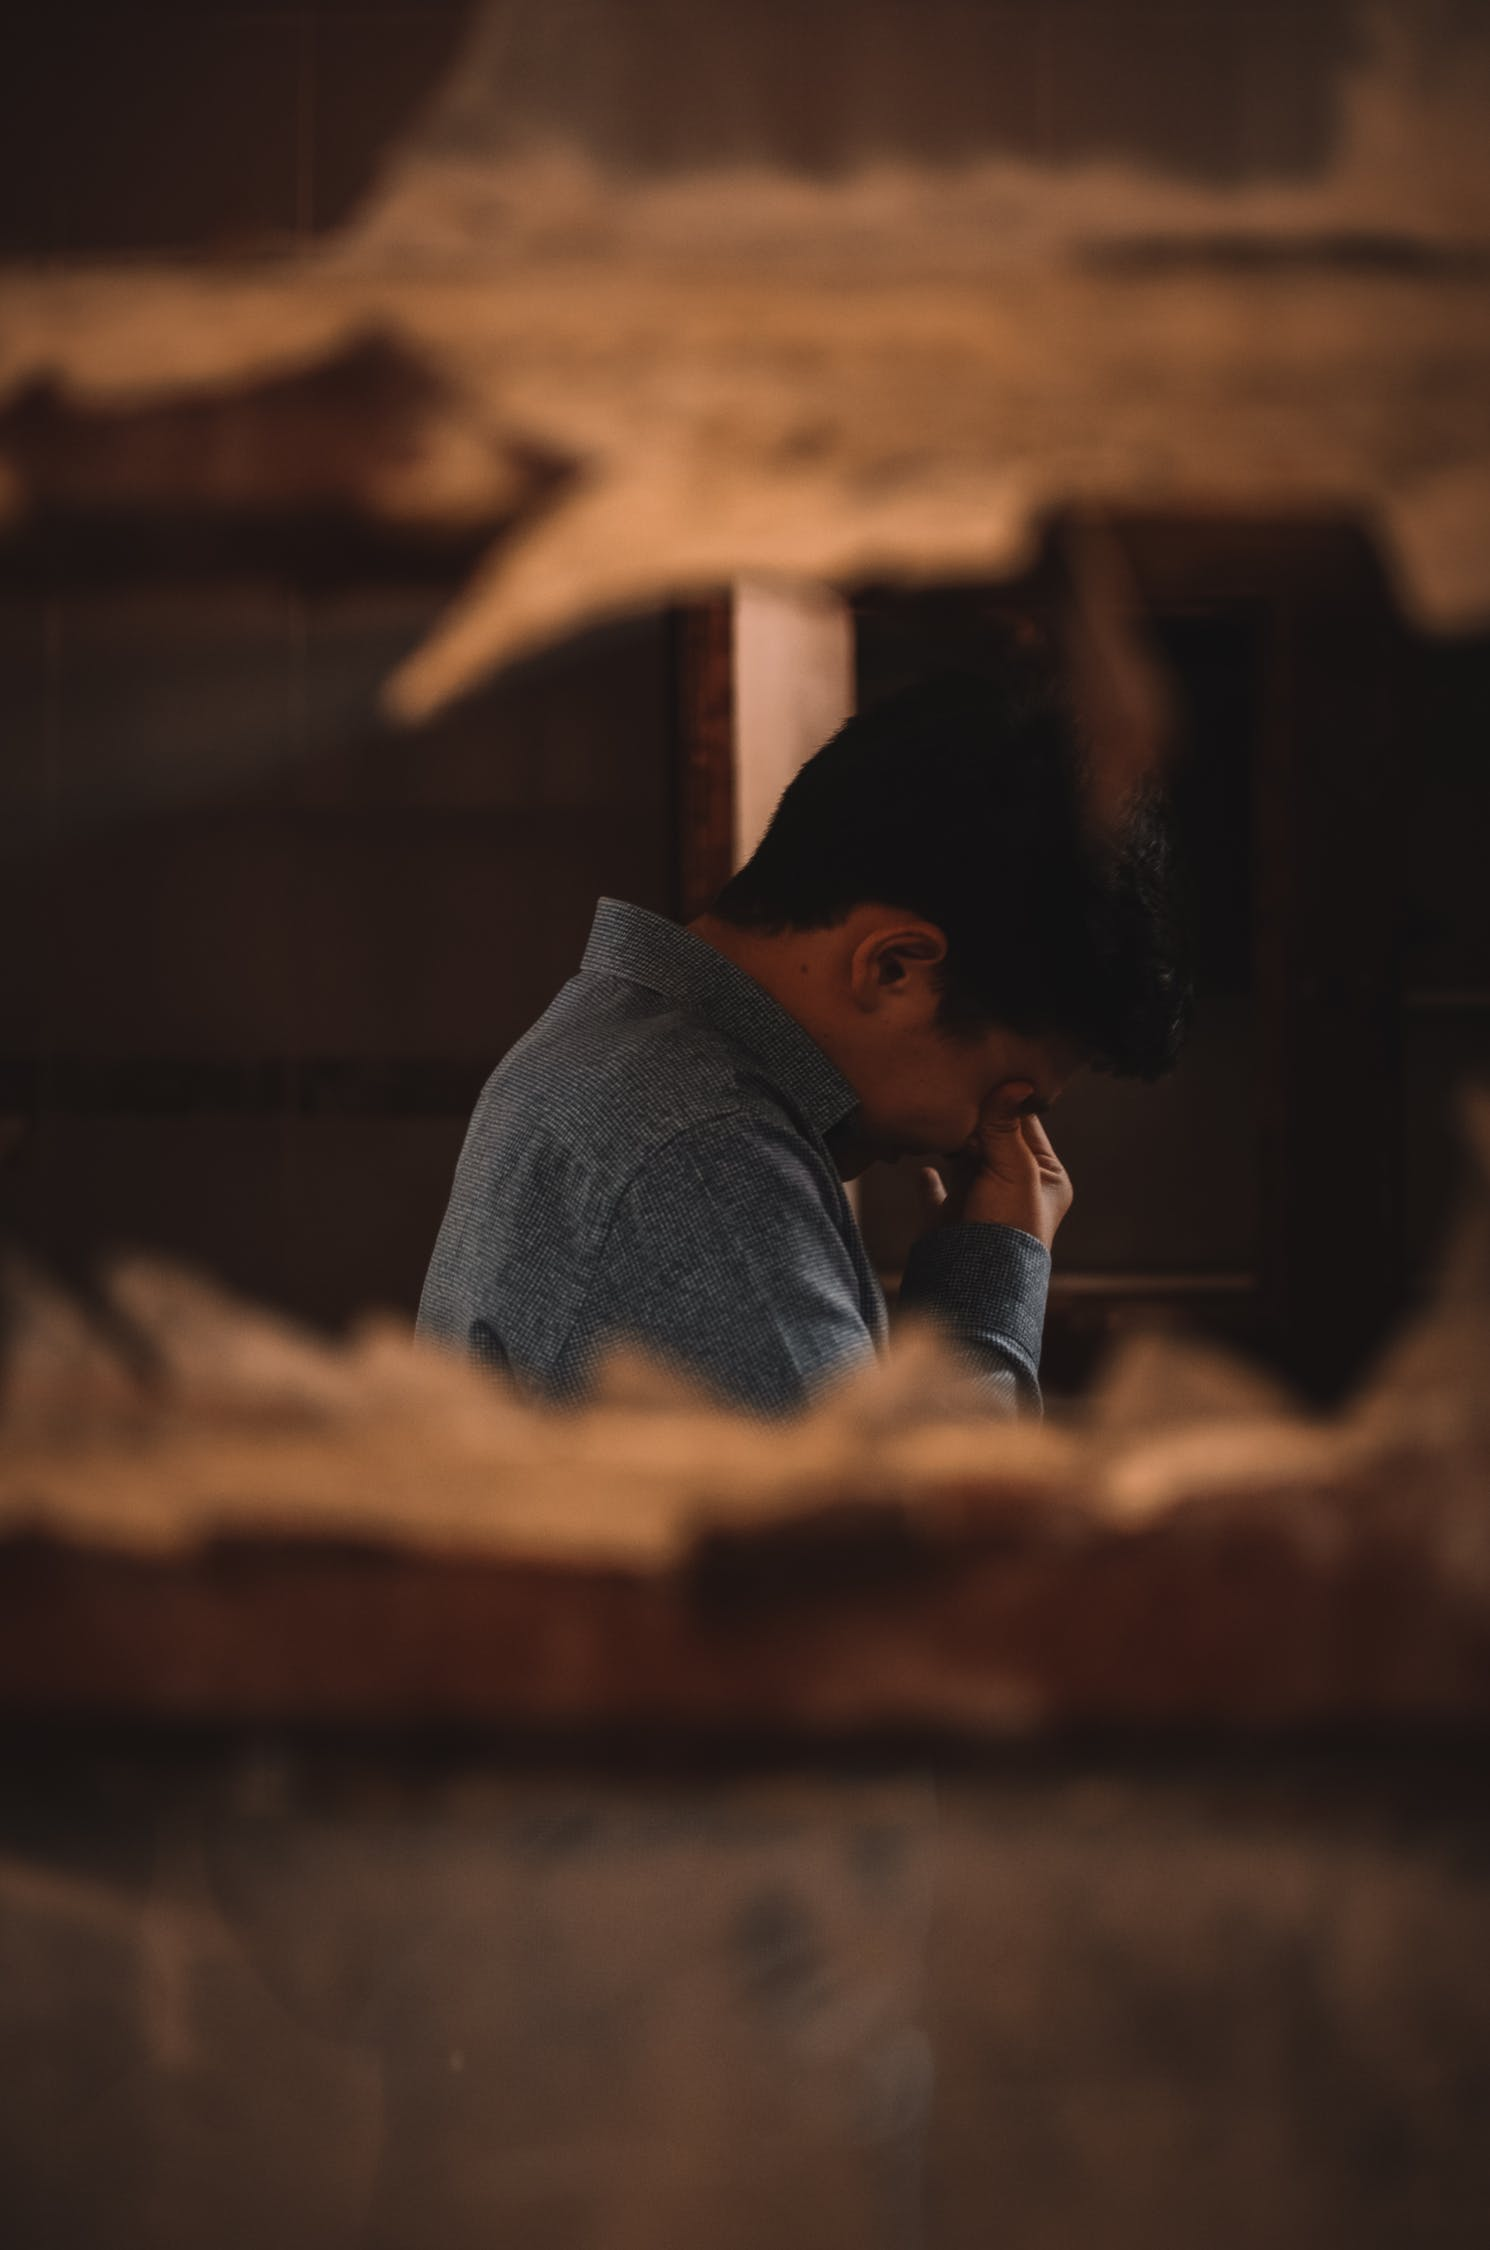 focus shot of a man looking distressed, grieving, crying, moving on, healing process